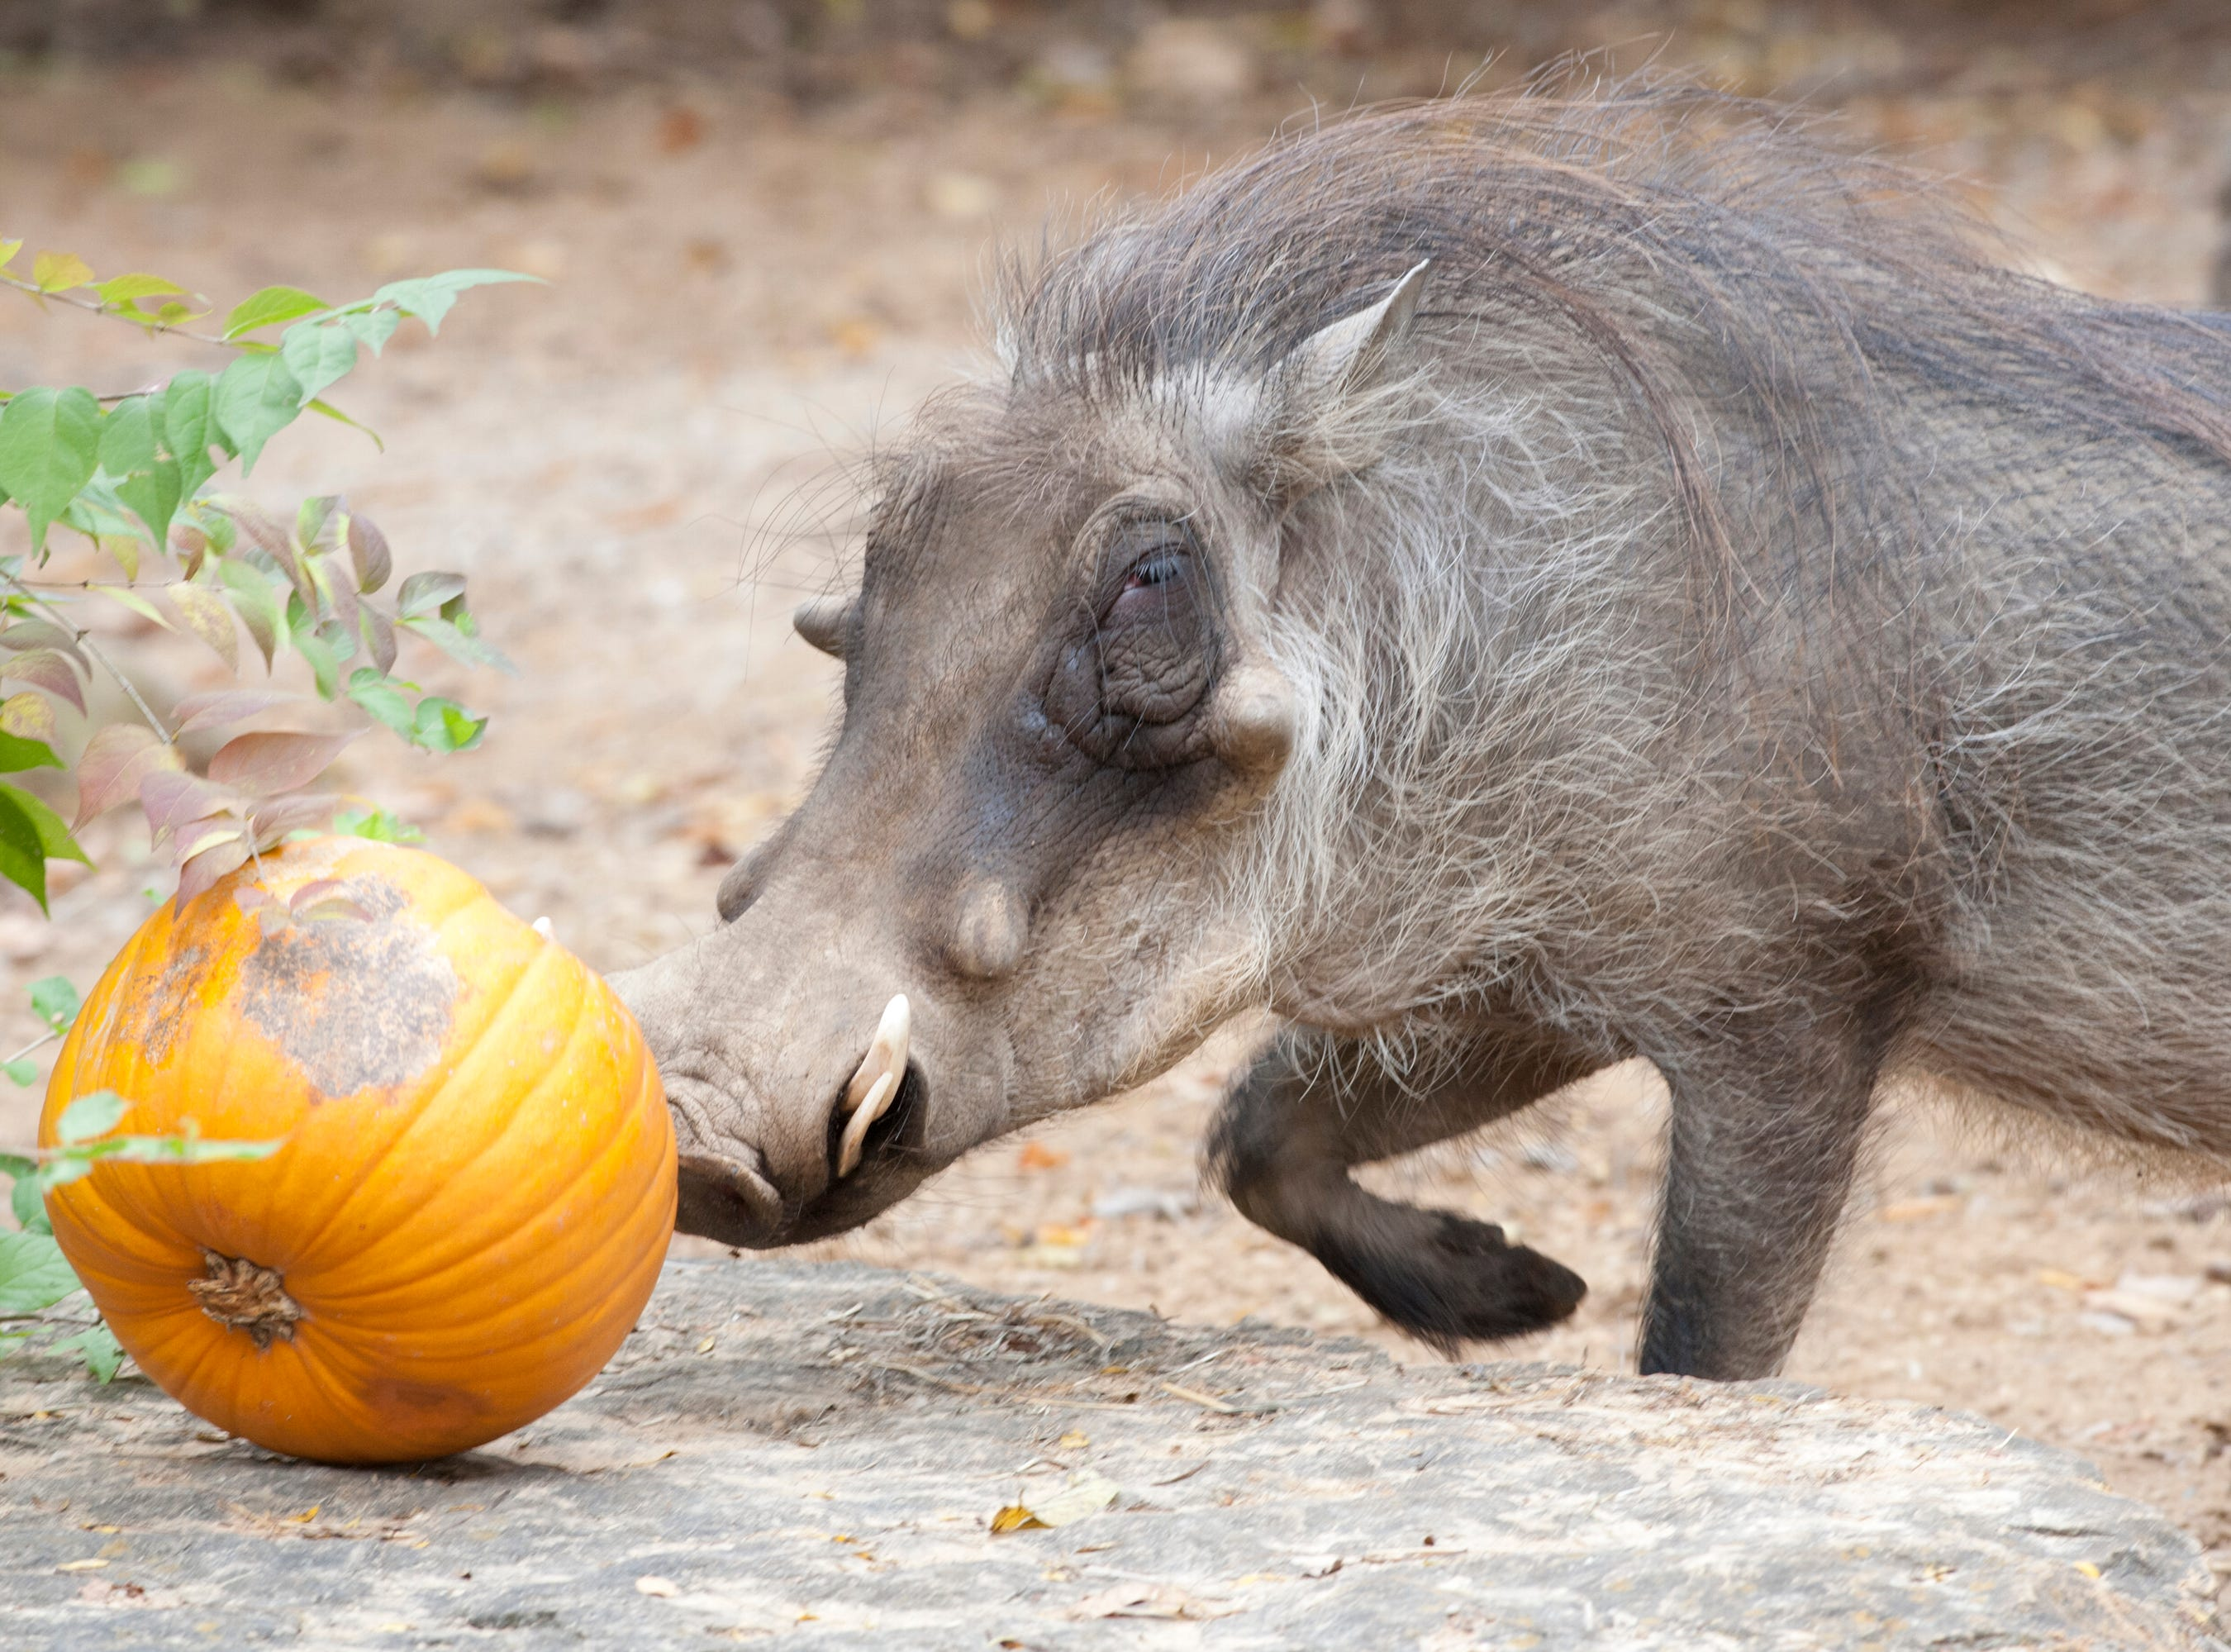 Digger, a warthog at the Louisville Zoo rolls a pumpkin toward a ledge during the zoo's annual pumpkin smash. The pumpkins being fed to the animals are from the zoo's Halloween event. November 04, 2018